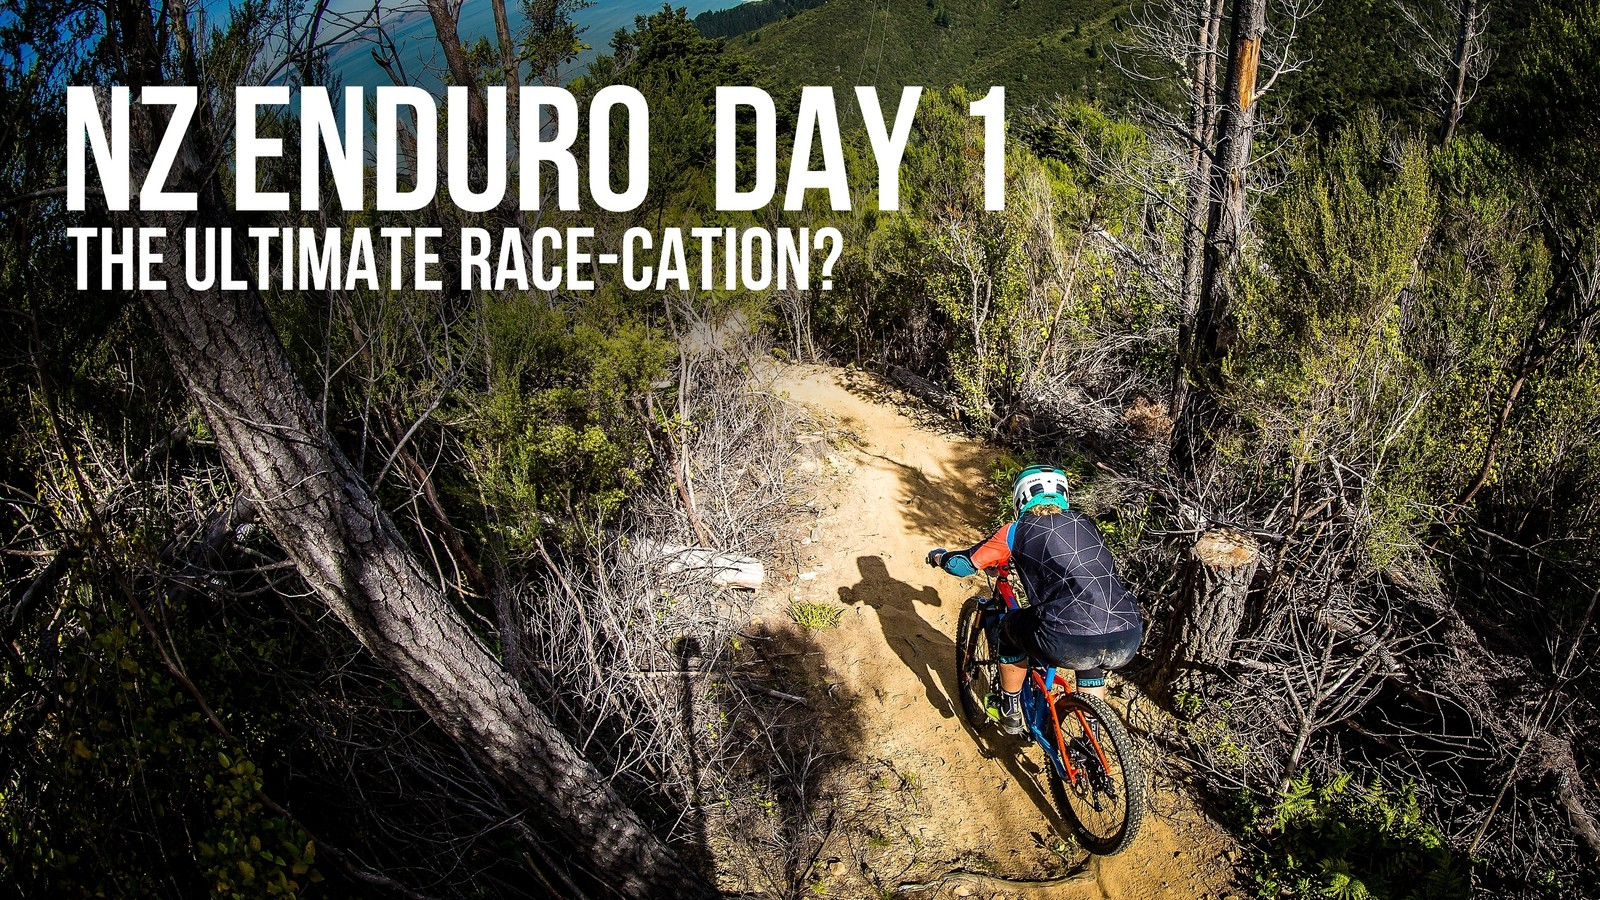 The Ultimate Race-cation? NZ Enduro Day 1